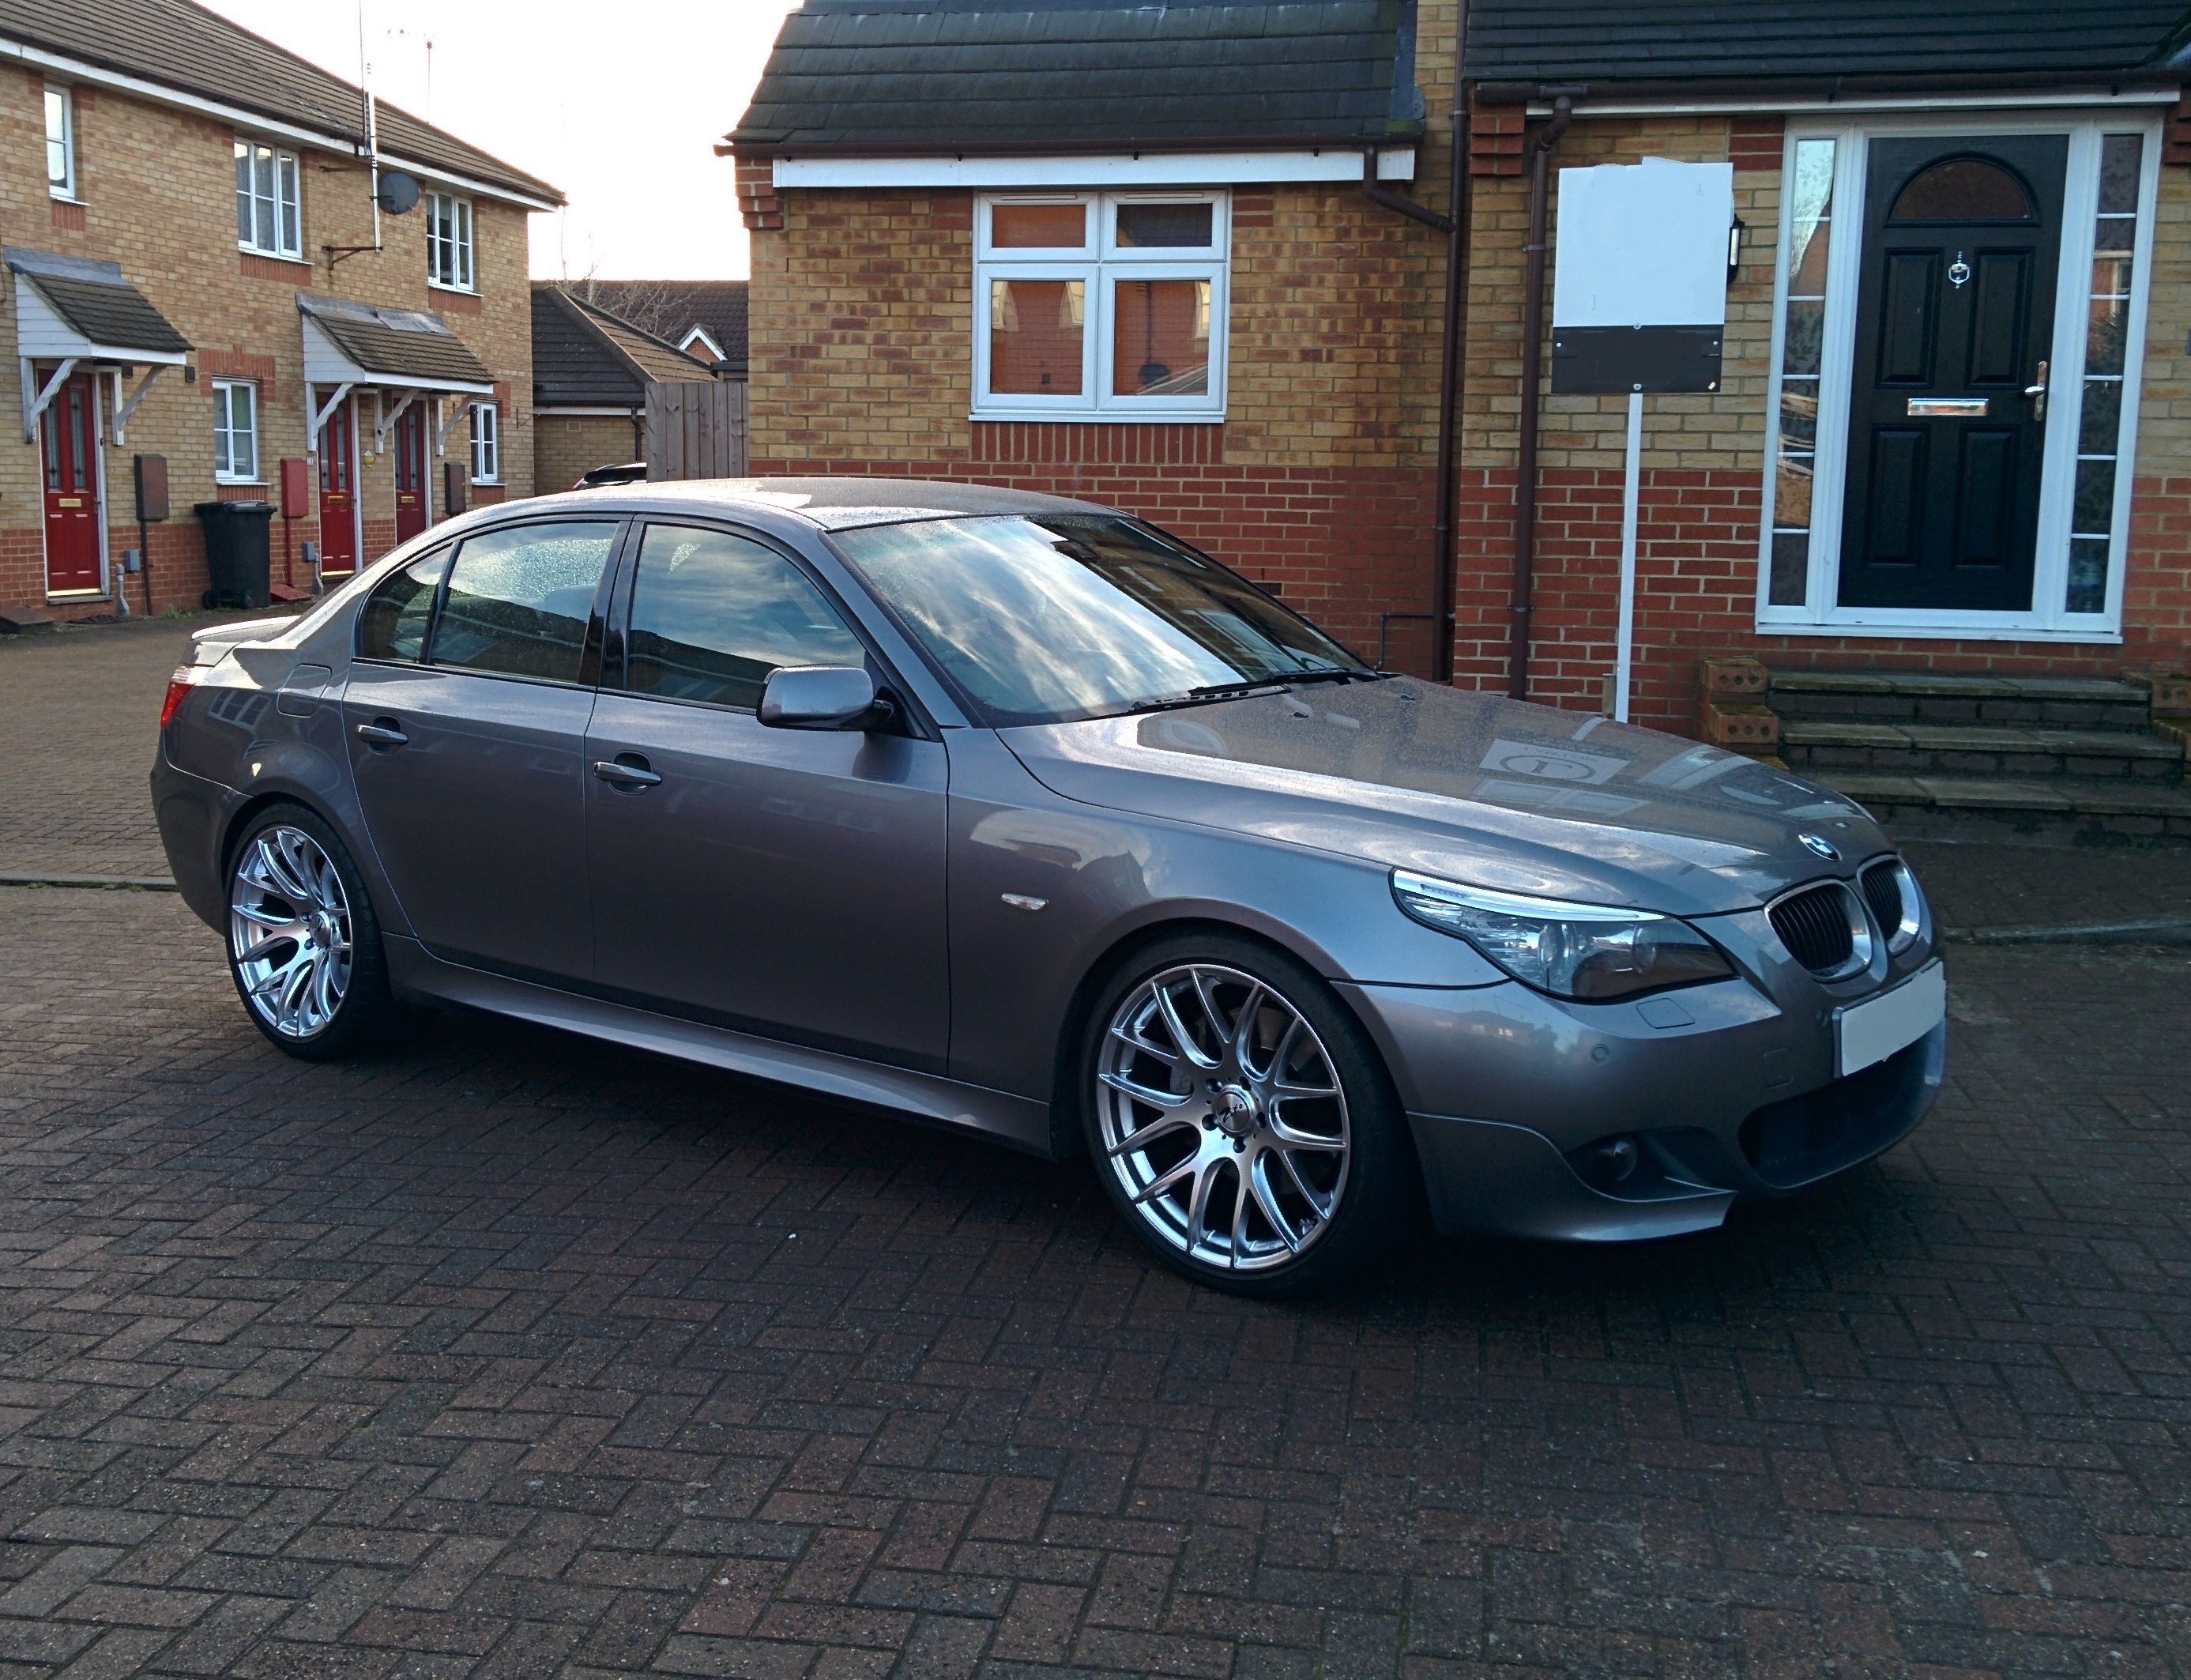 New 19 Quot Zito 935 Csl Gts Style Alloys In Hyper Silver Big